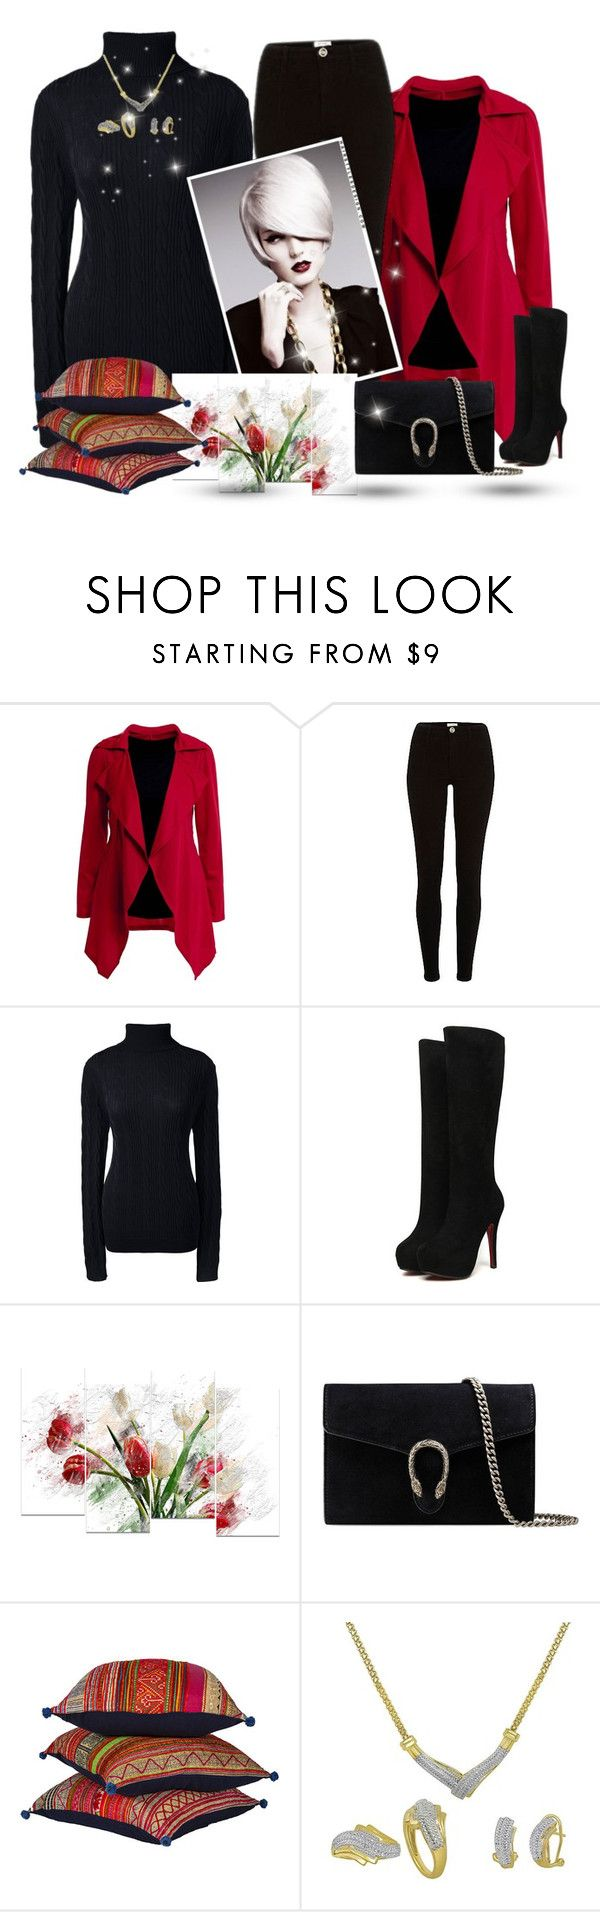 """Mango's collection"" by mango27 ❤ liked on Polyvore featuring Lands' End, Design Art, Gucci and Cultural Intrigue"